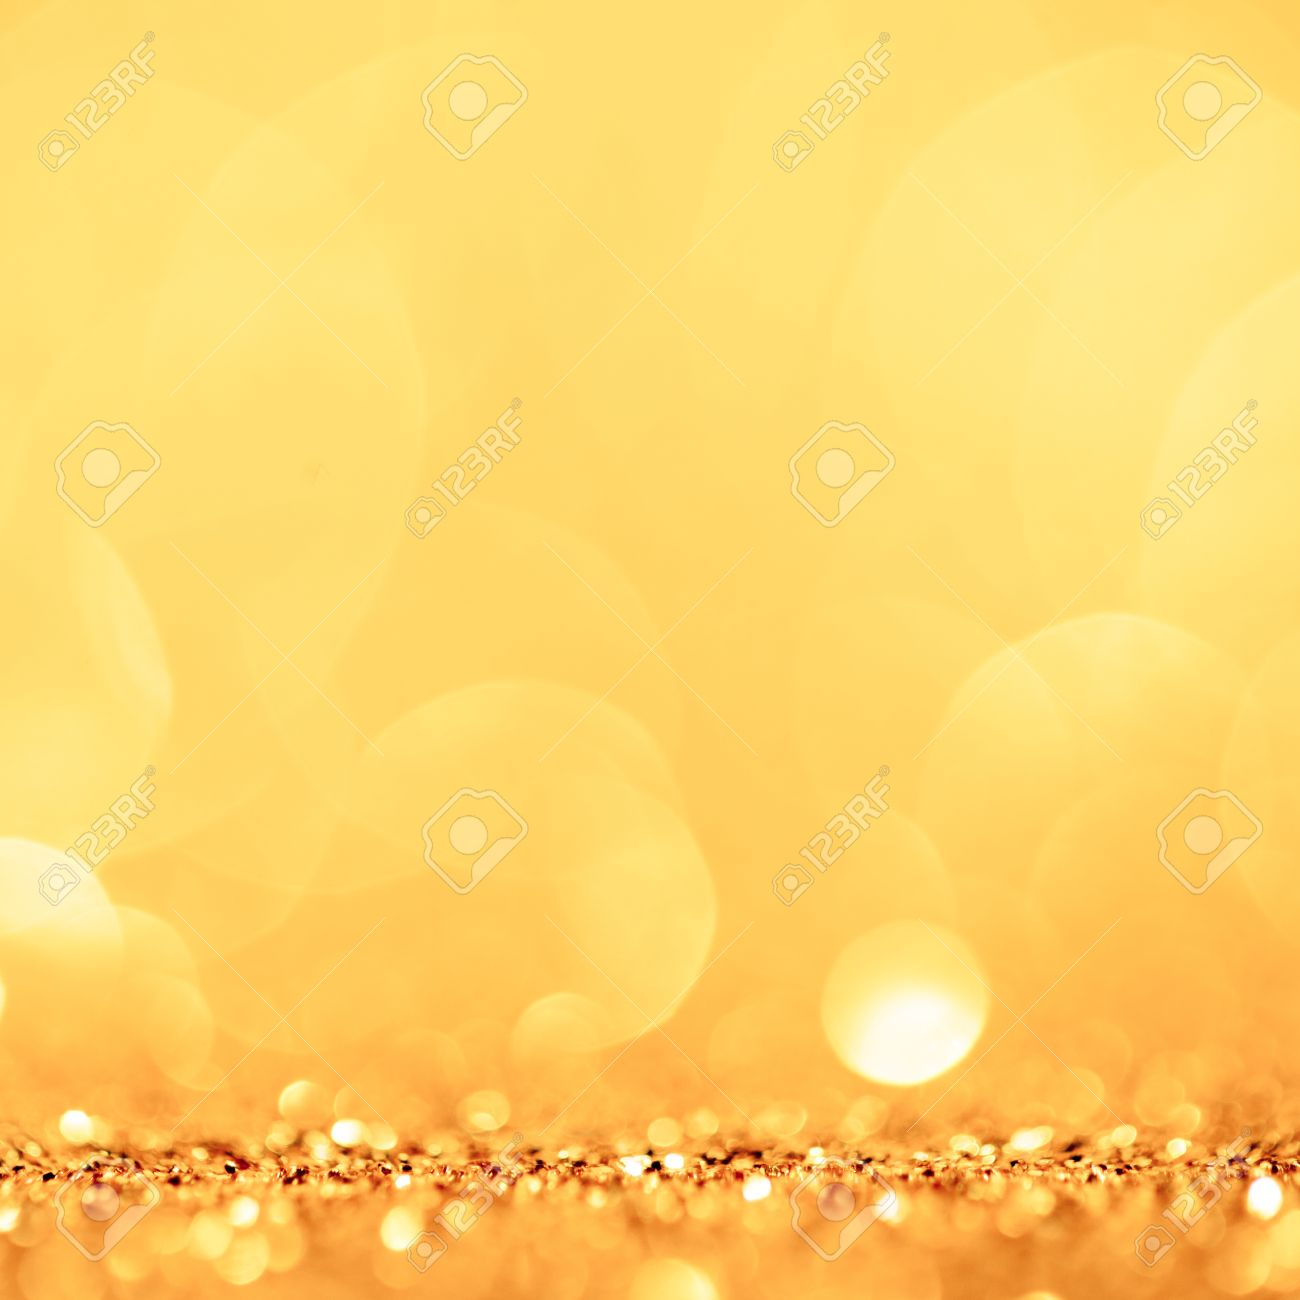 golden and yellow circle background Stock Photo - 41244704